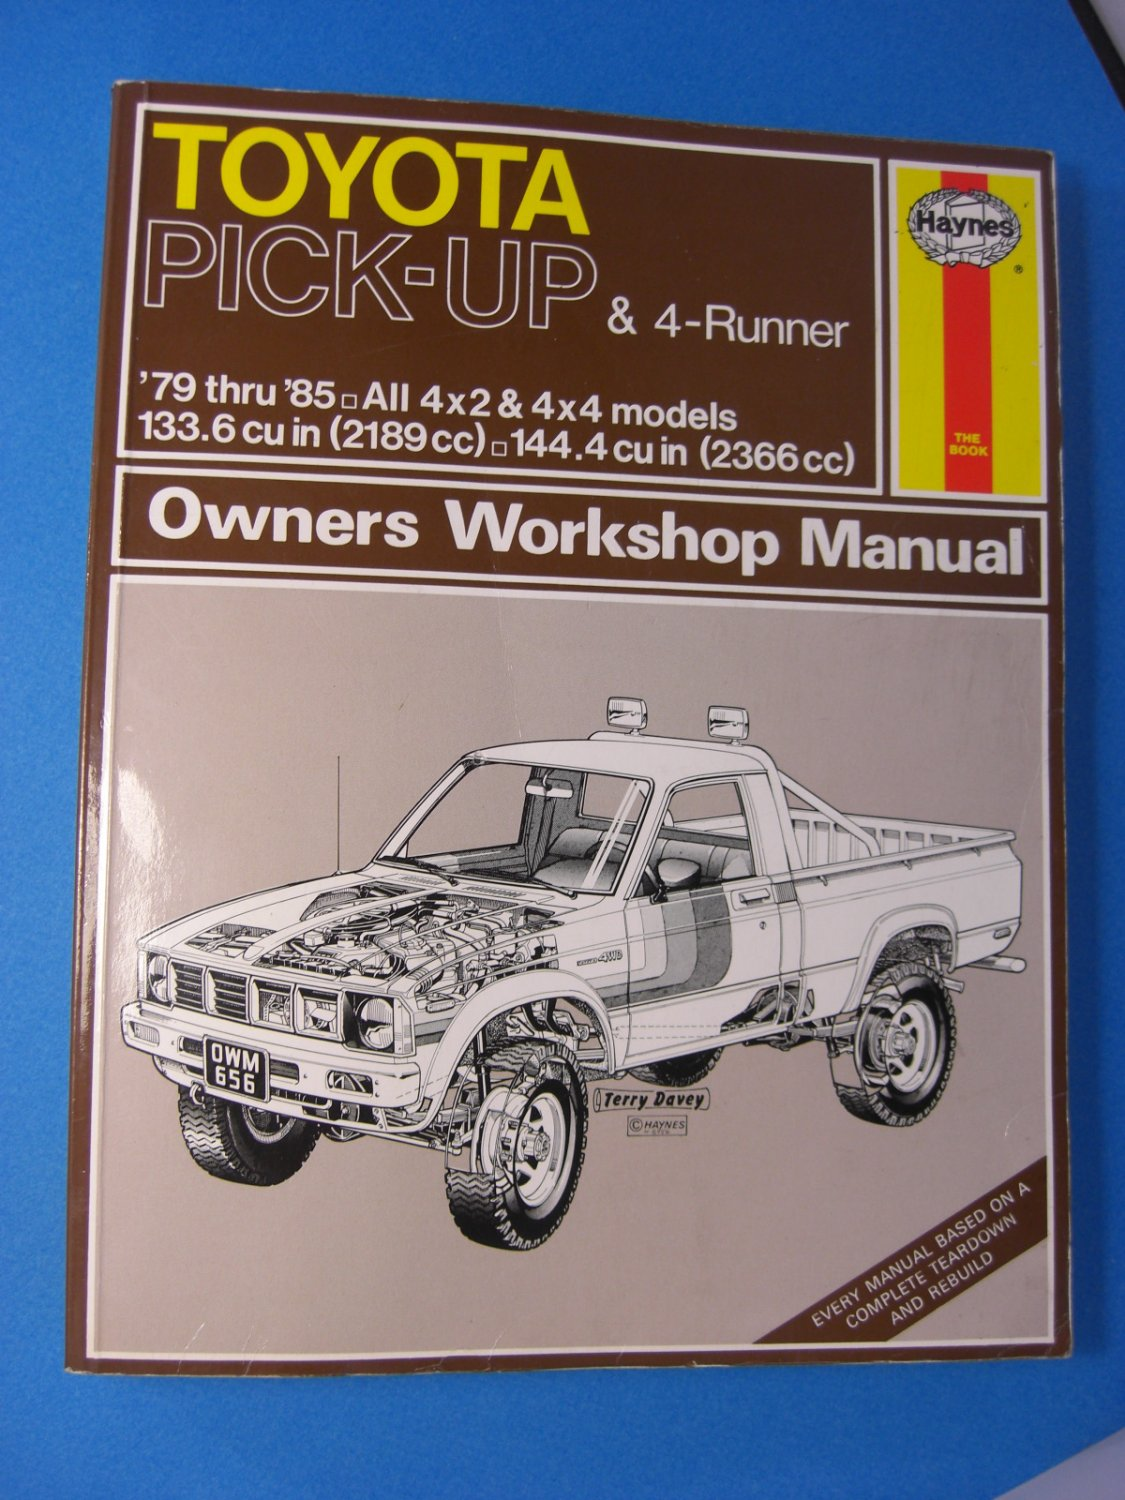 HAYNES Toyota Pick-Up & 4-Runner '79 thru '85 Owners Workshop Manual